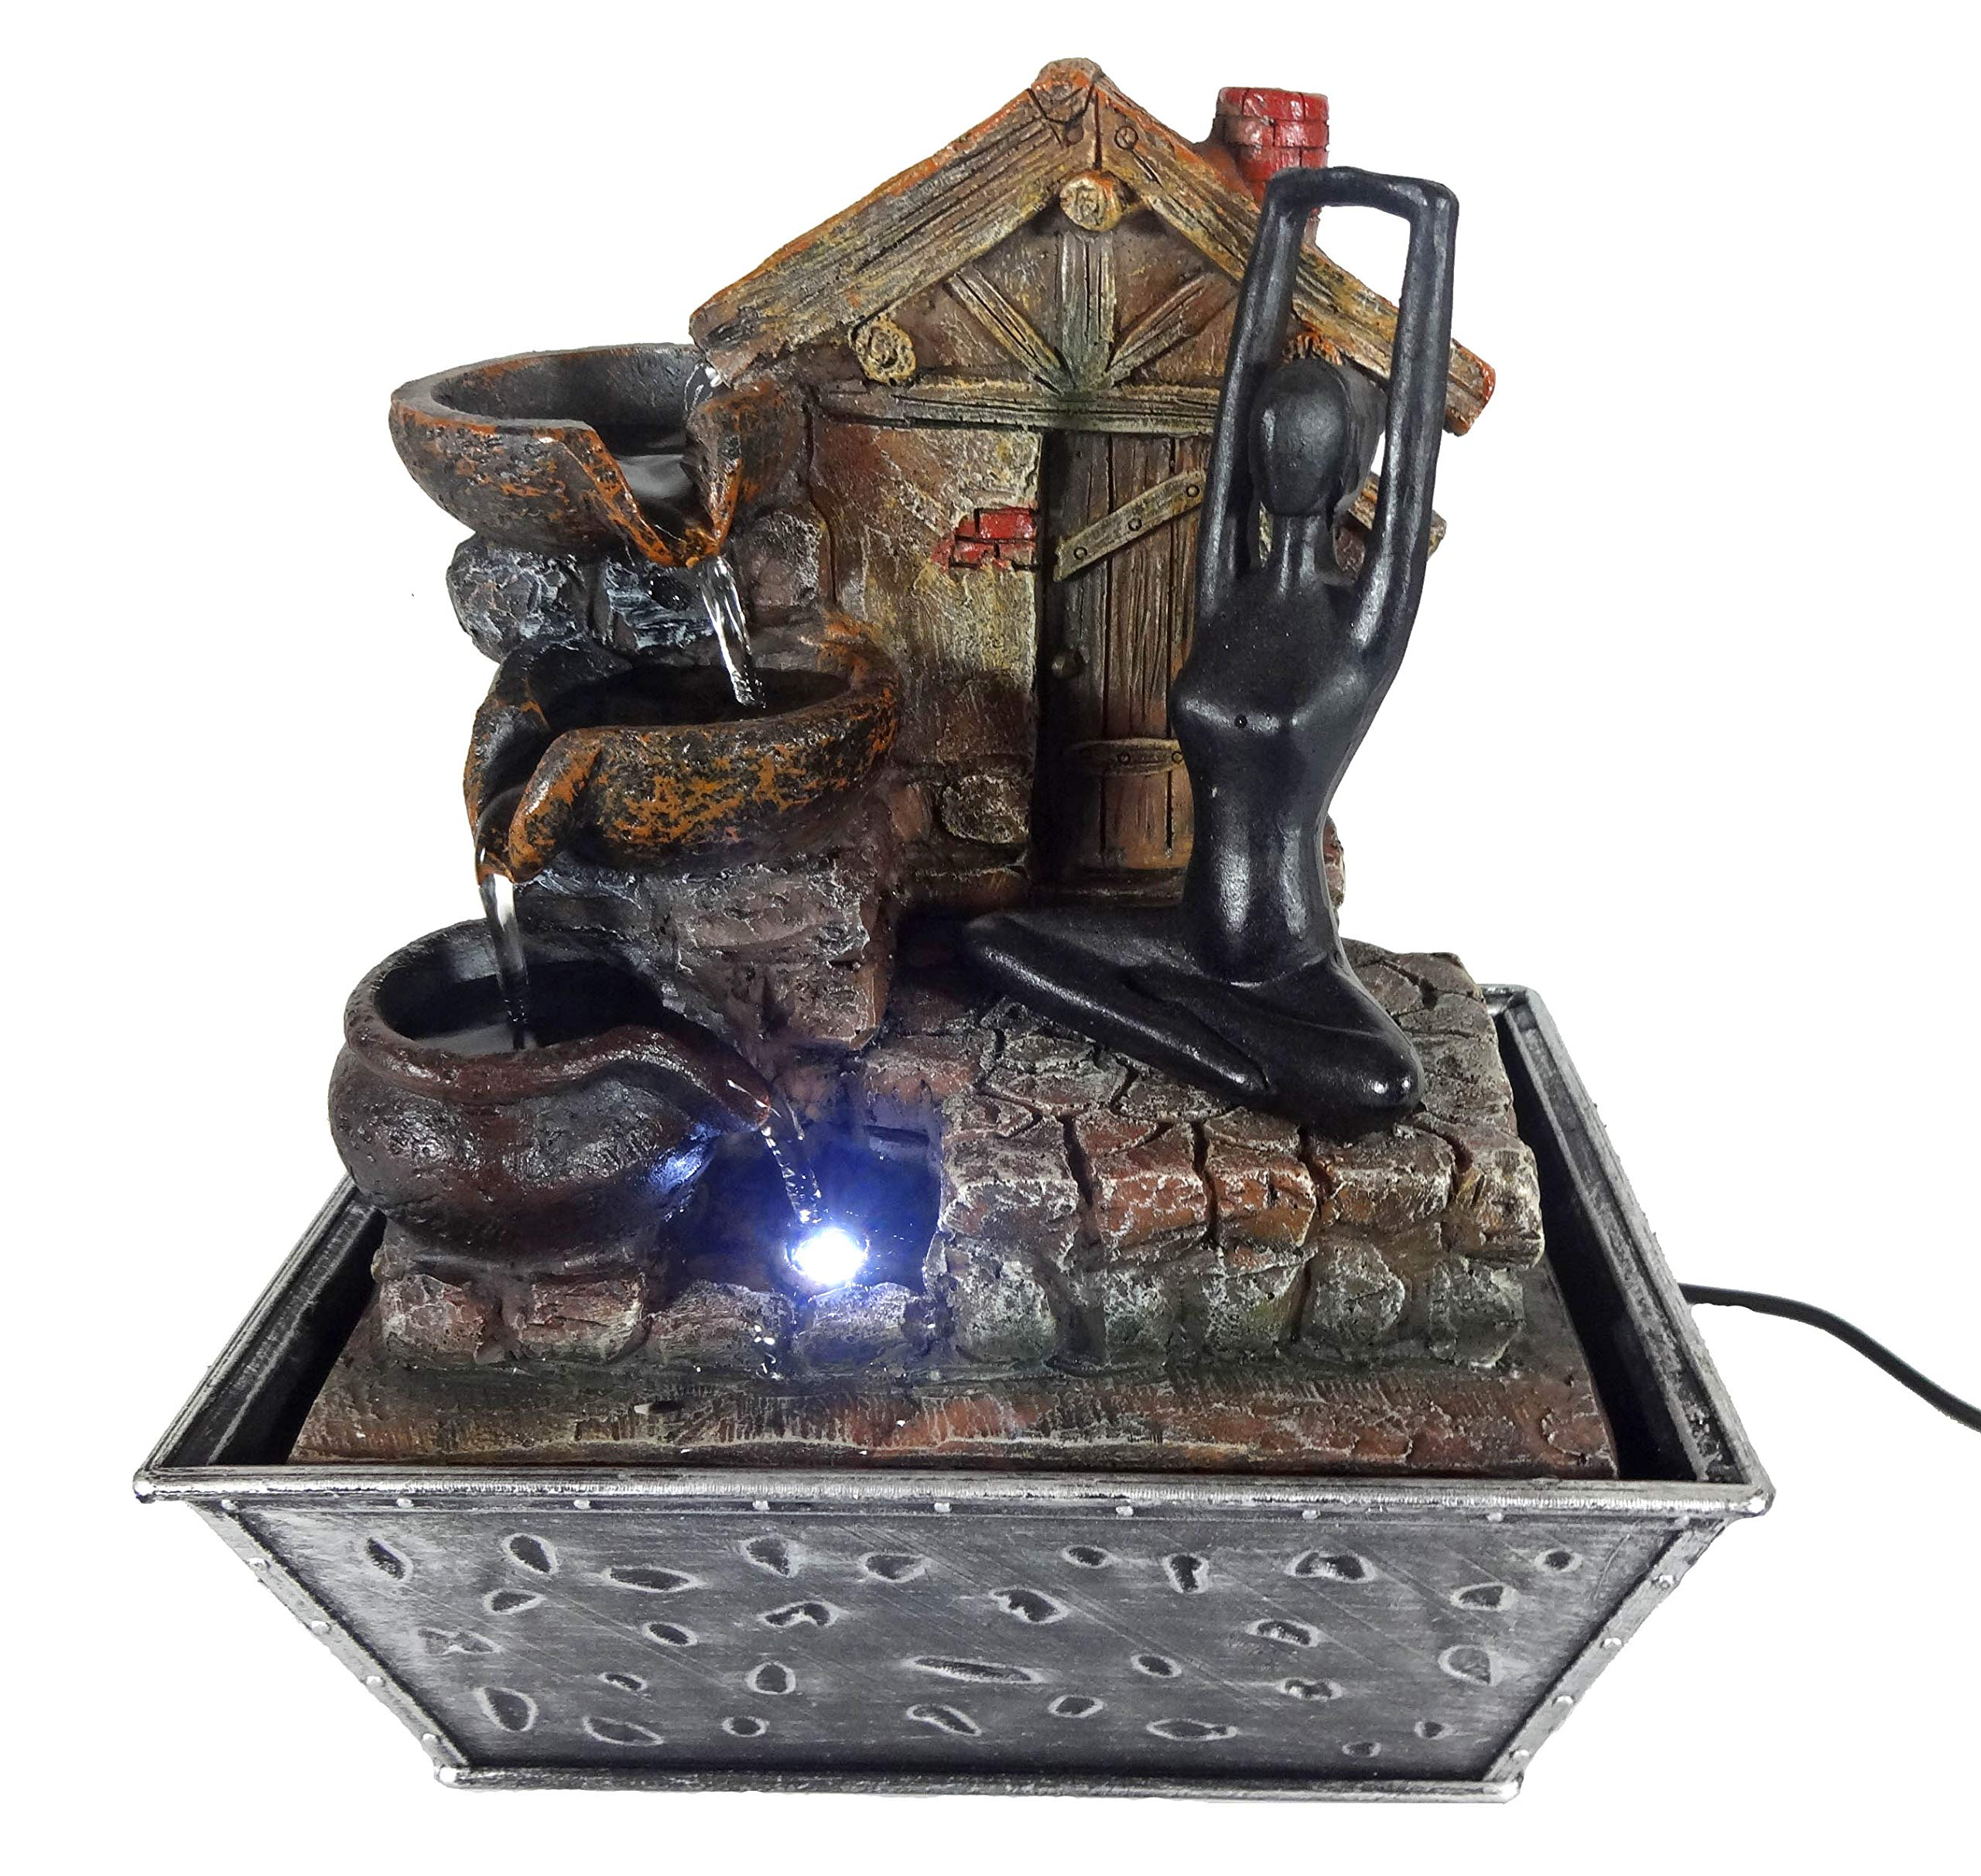 GiftsRDecor Tabletop Fountain Yoga Meditation Near Hut Water Falling Bowls